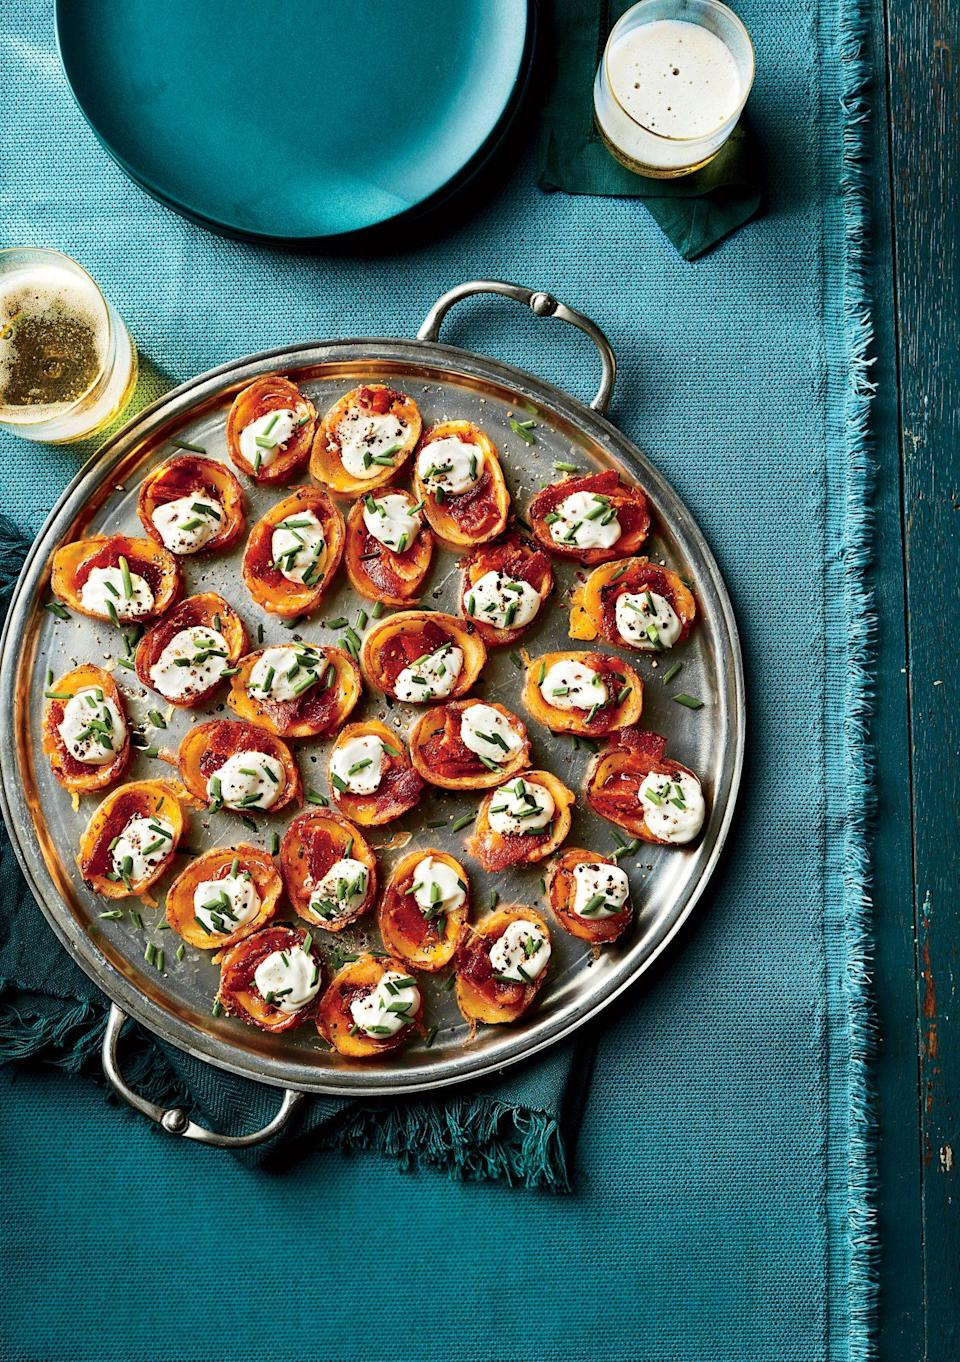 """<p><strong>Recipe: <a href=""""https://www.southernliving.com/recipes/mini-potato-skins-recipe"""" rel=""""nofollow noopener"""" target=""""_blank"""" data-ylk=""""slk:Mini Potato Skins"""" class=""""link rapid-noclick-resp"""">Mini Potato Skins</a></strong></p> <p>Just five ingredients are needed to create this miniature version of the classic party food.</p>"""